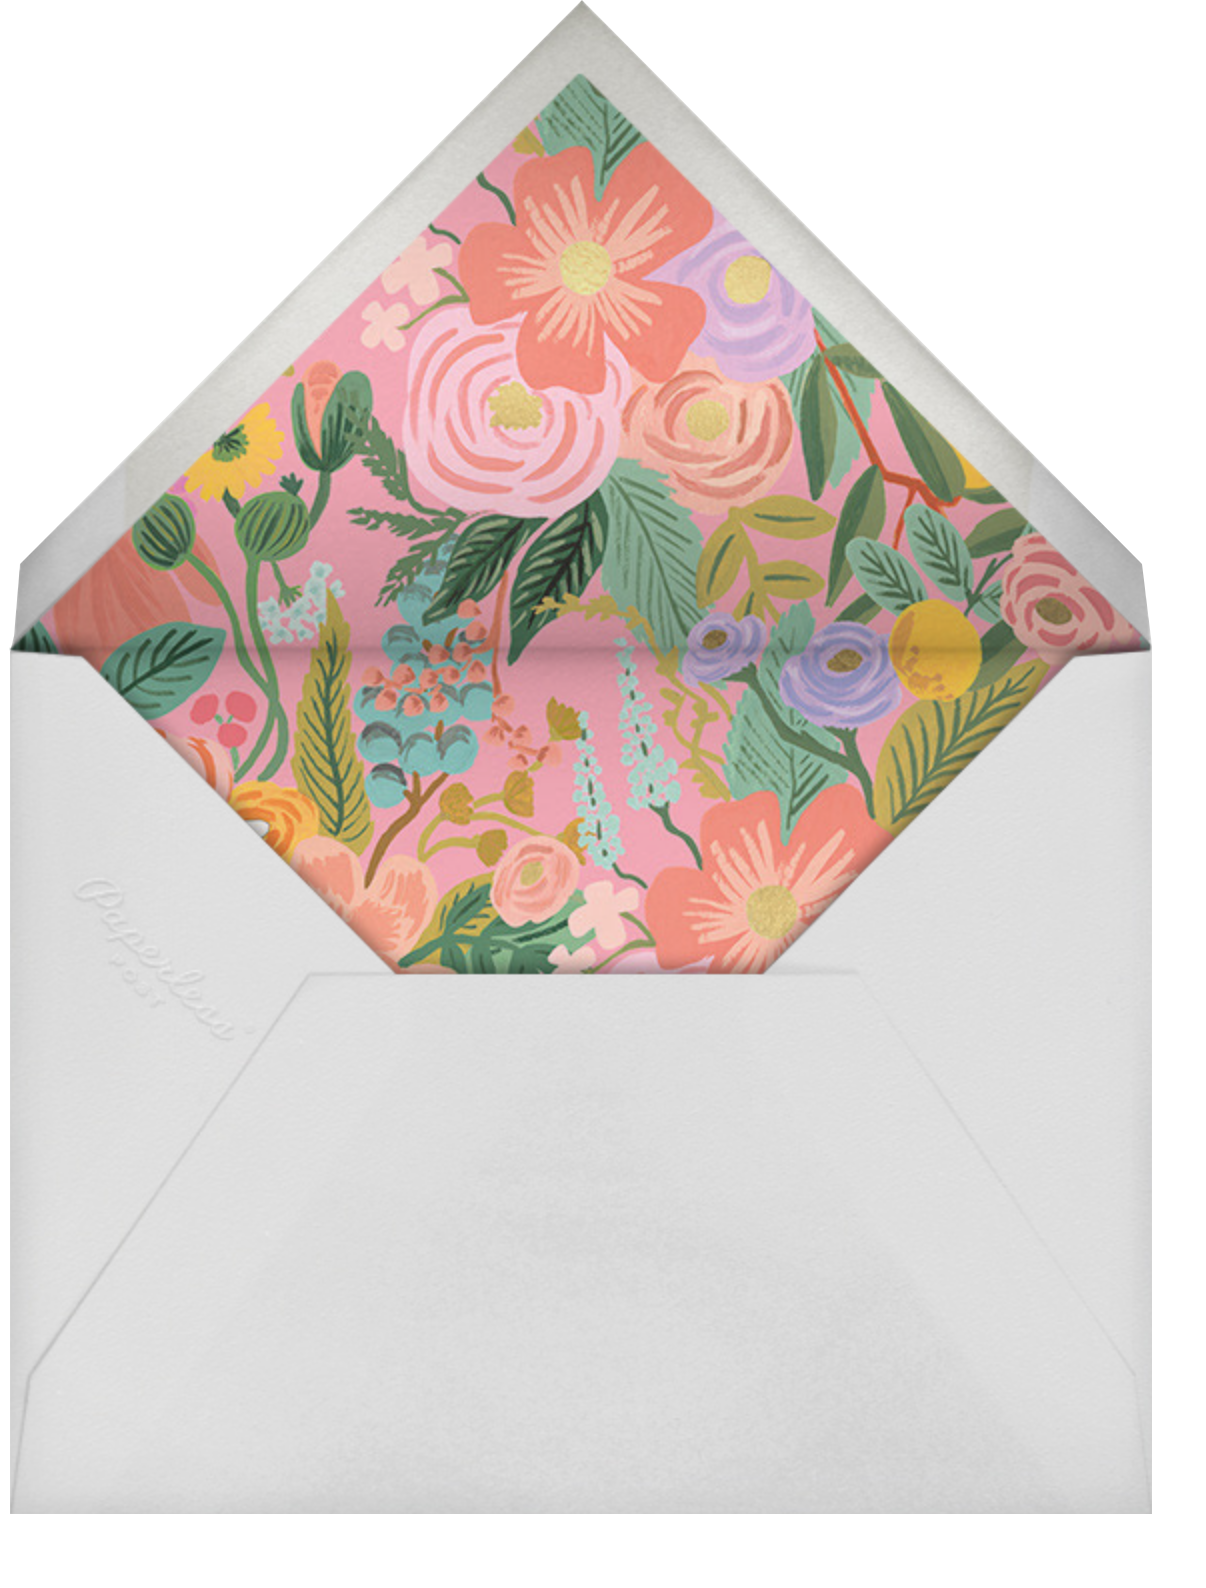 Garden Party (Square) - Rifle Paper Co. - Brunch - envelope back